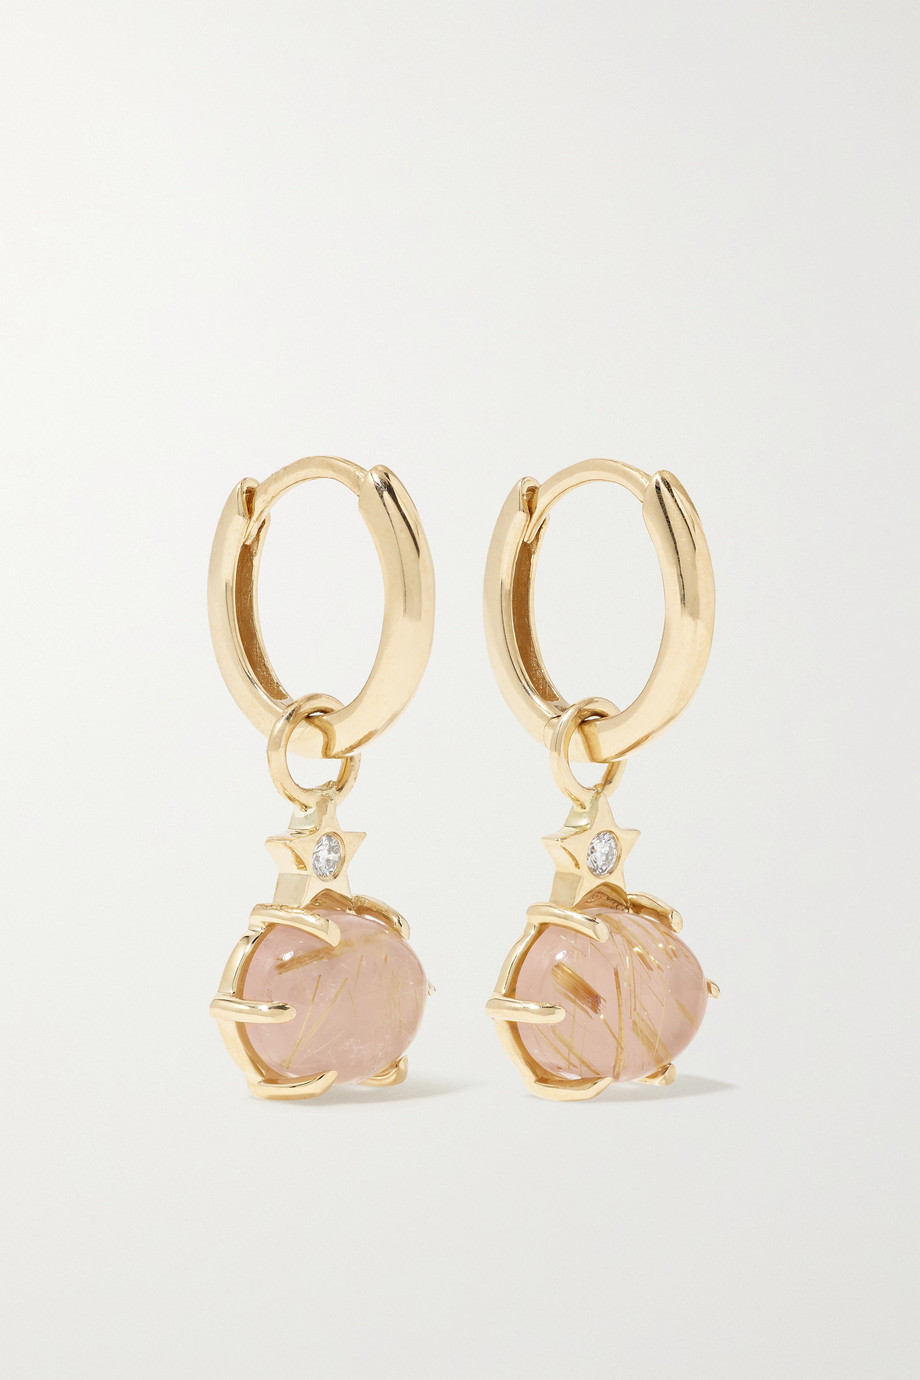 ANDREA FOHRMAN Mini Cosmo 14-karat gold, quartz and diamond earrings